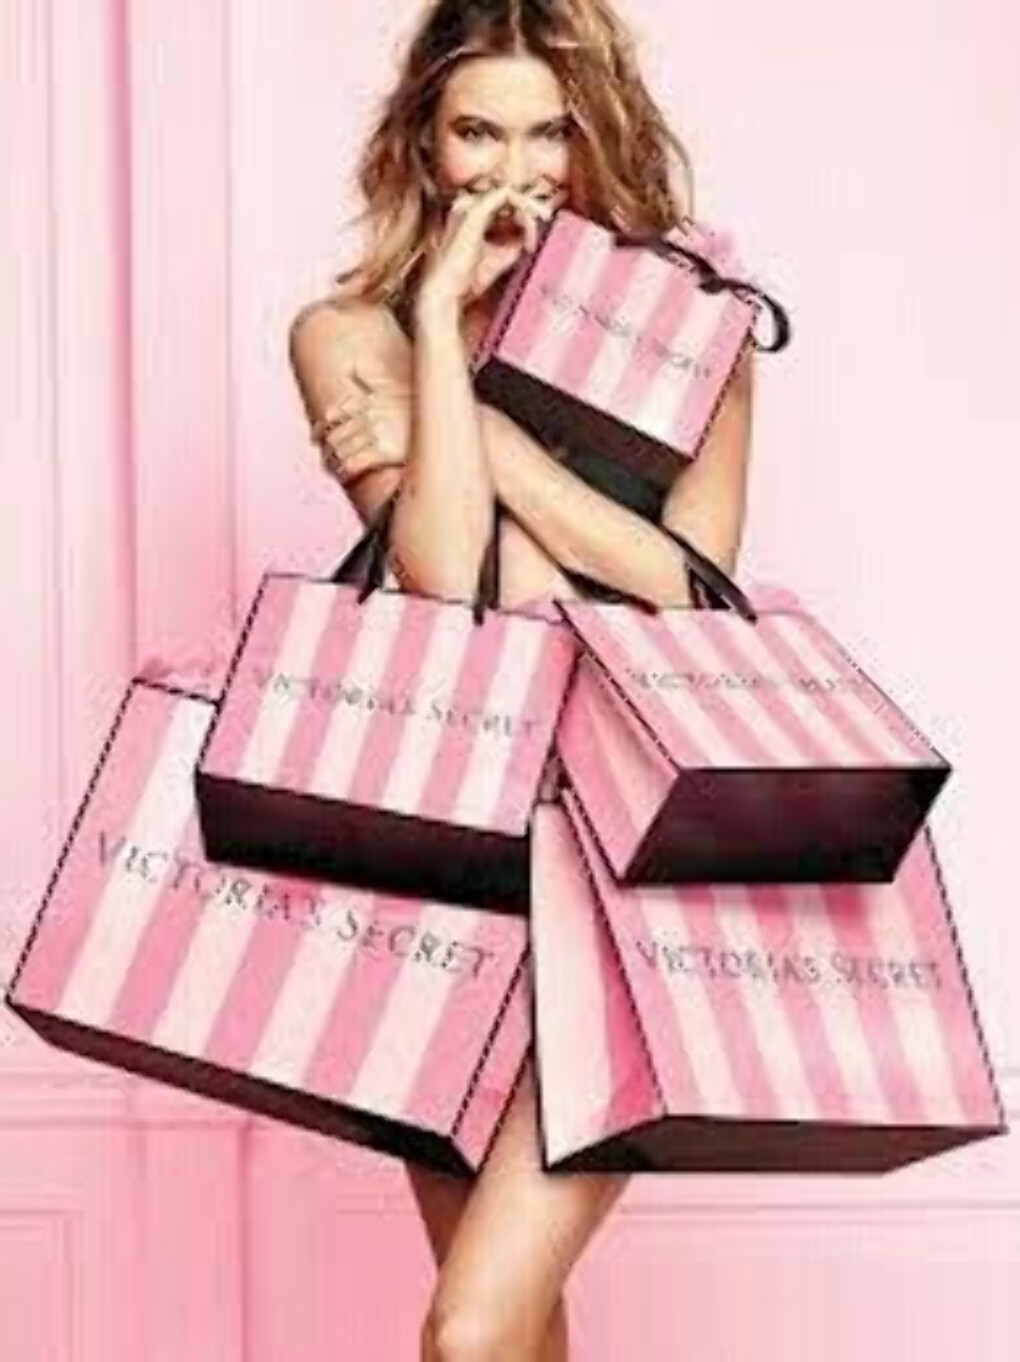 Victoria Secret Shopping